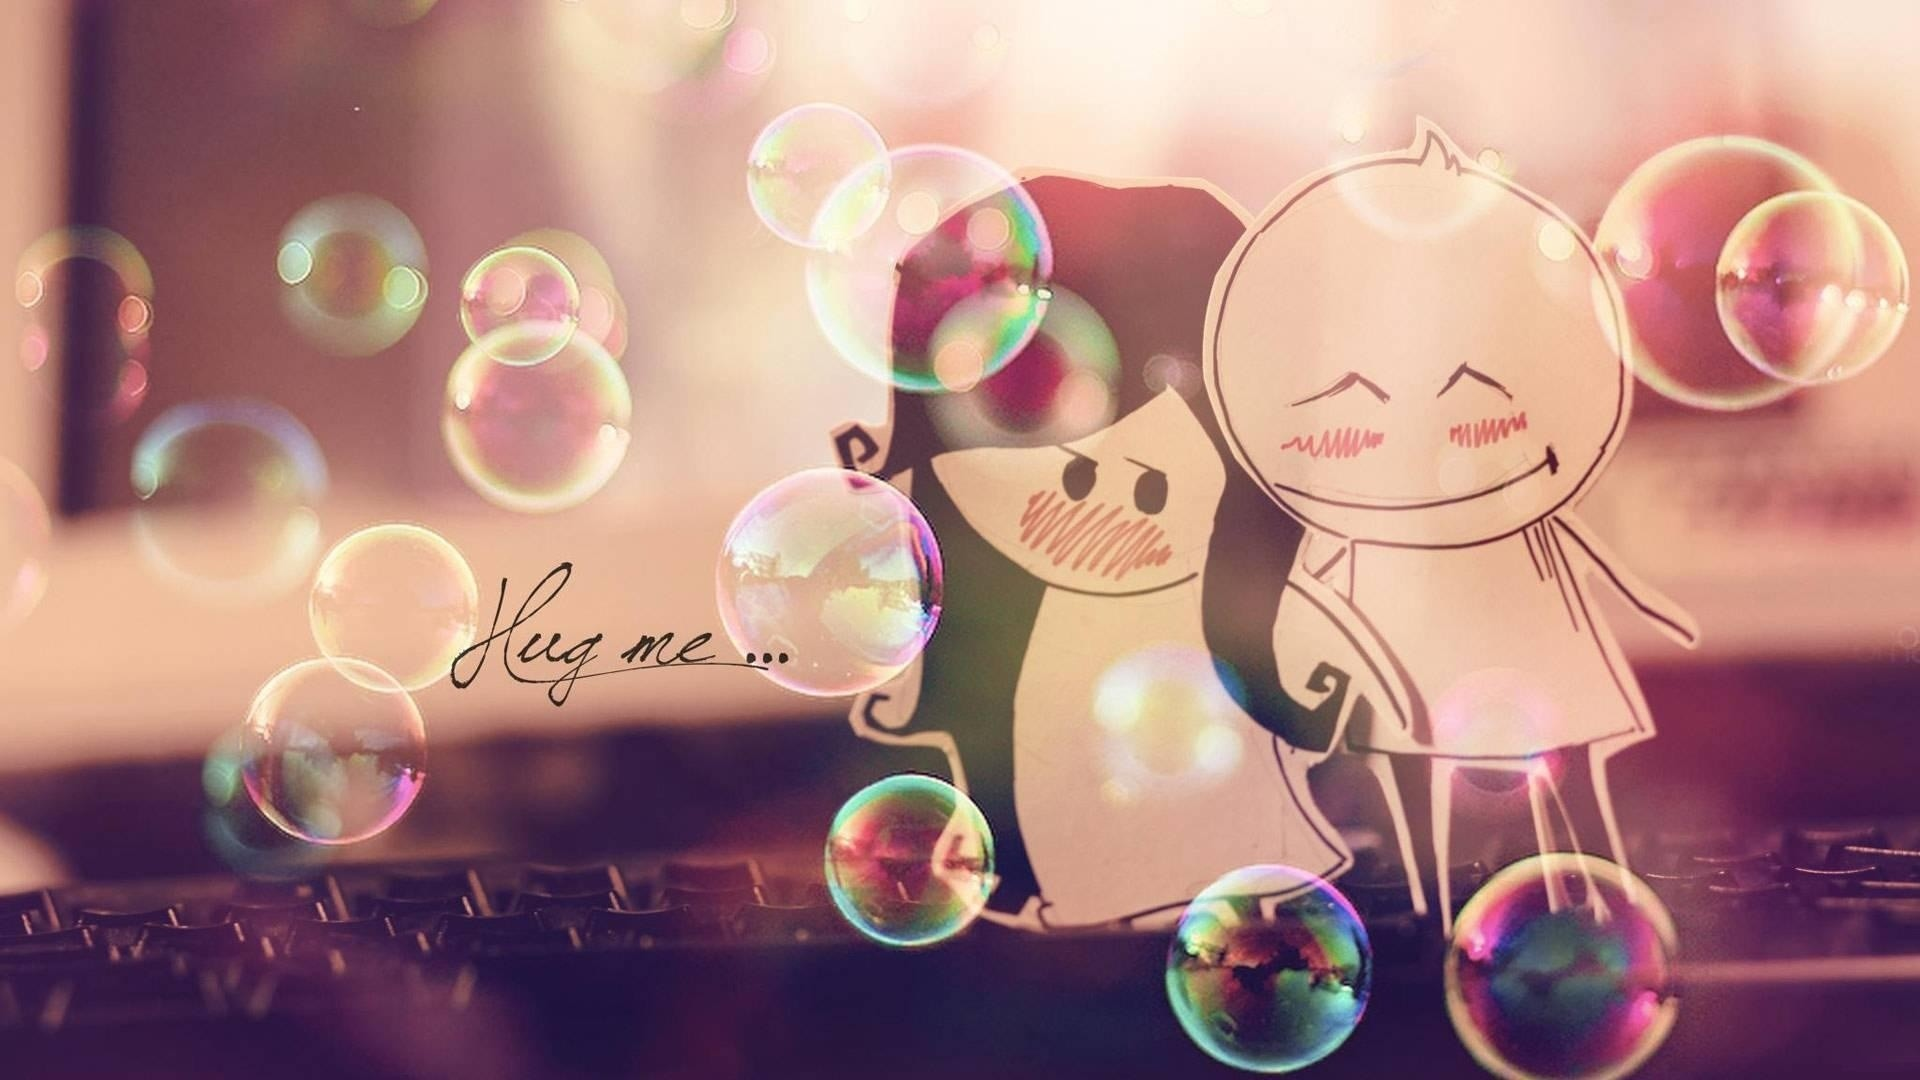 Cute Love Wallpapers For Desktop 66 Images